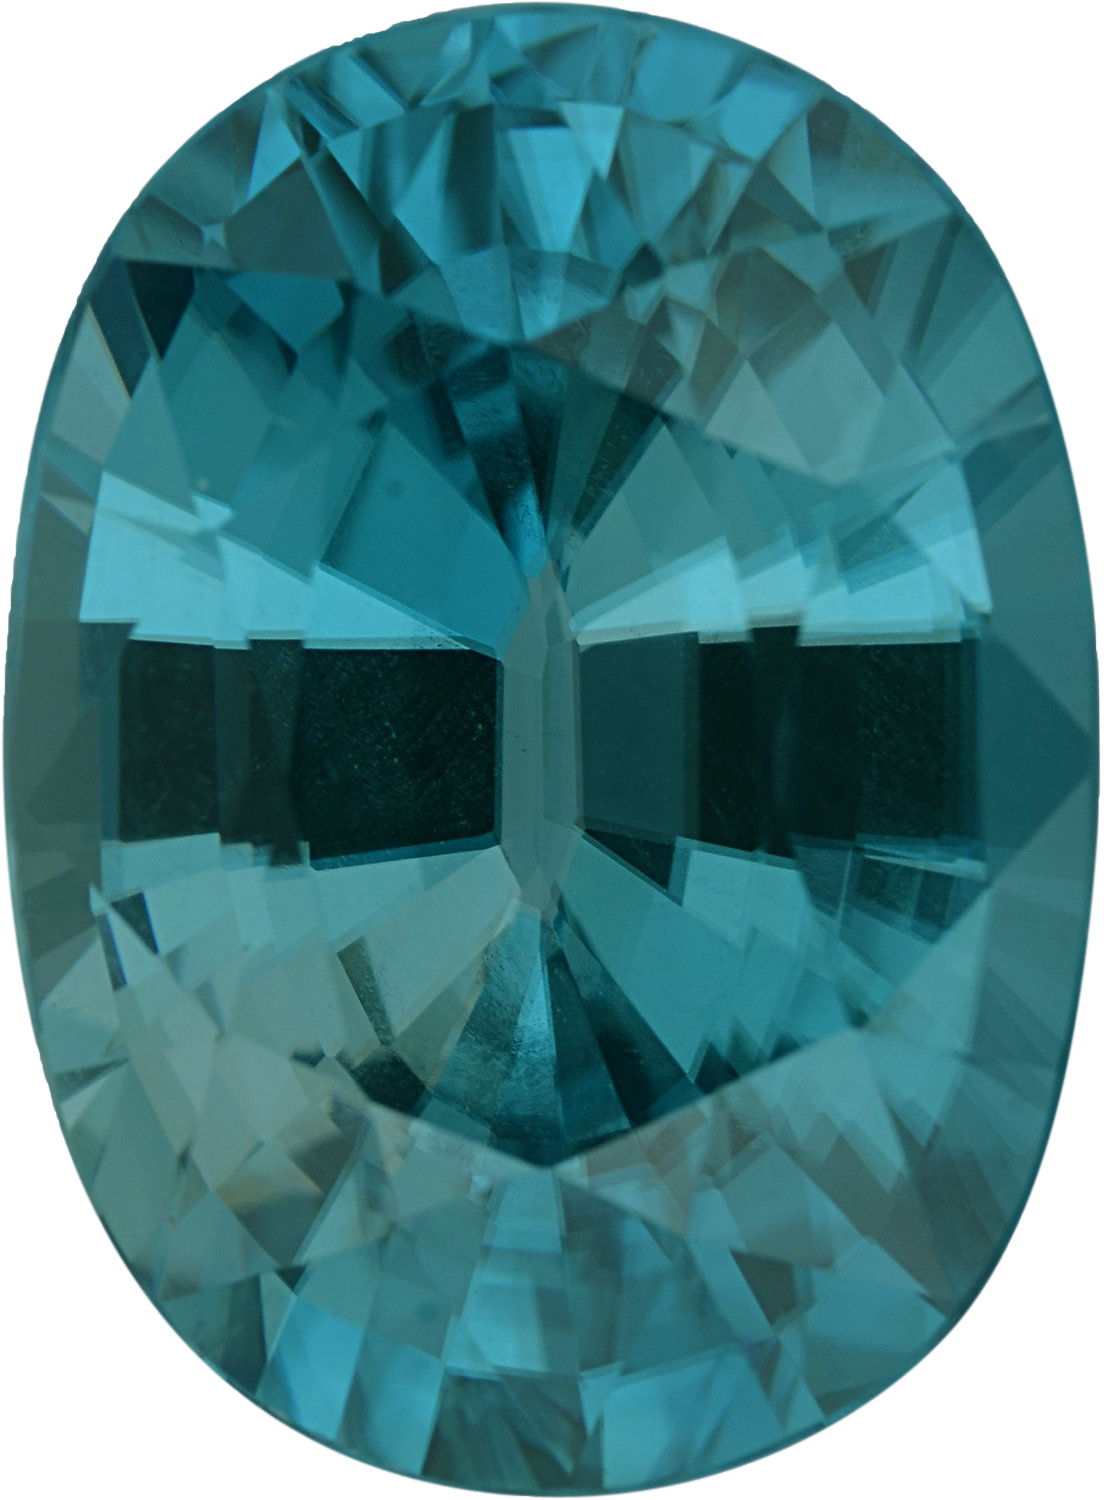 14.07 x 10.05 mm, Zircon Loose Gemstone in Oval Cut, 9.12 carats